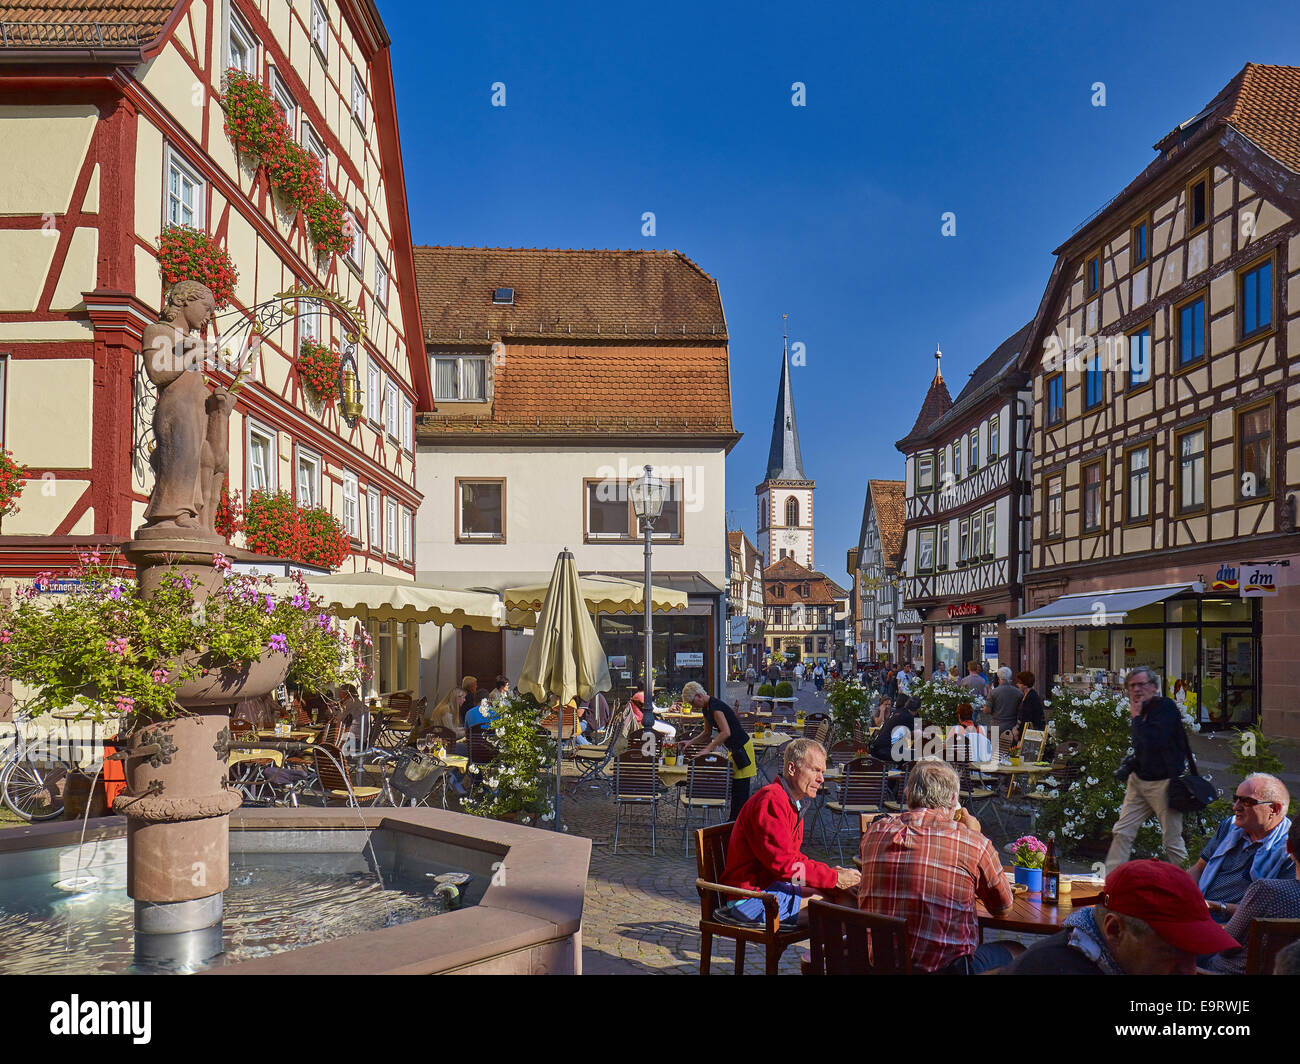 Marketplace in the old town lohr am main germany stock for Heimbach lohr am main